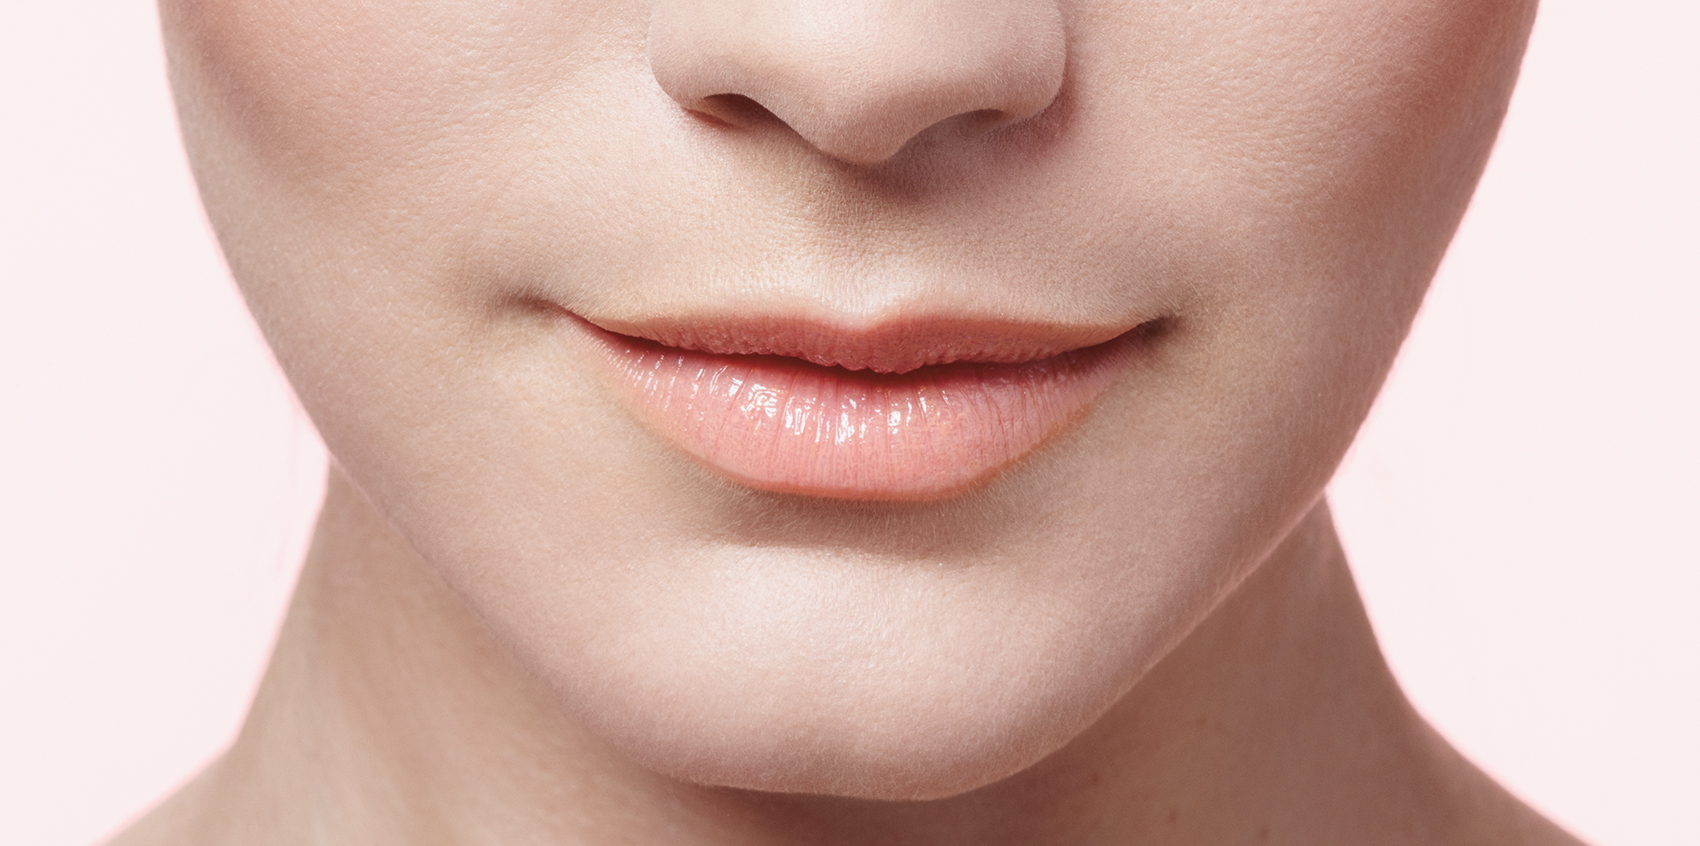 chapped-lips-treatment